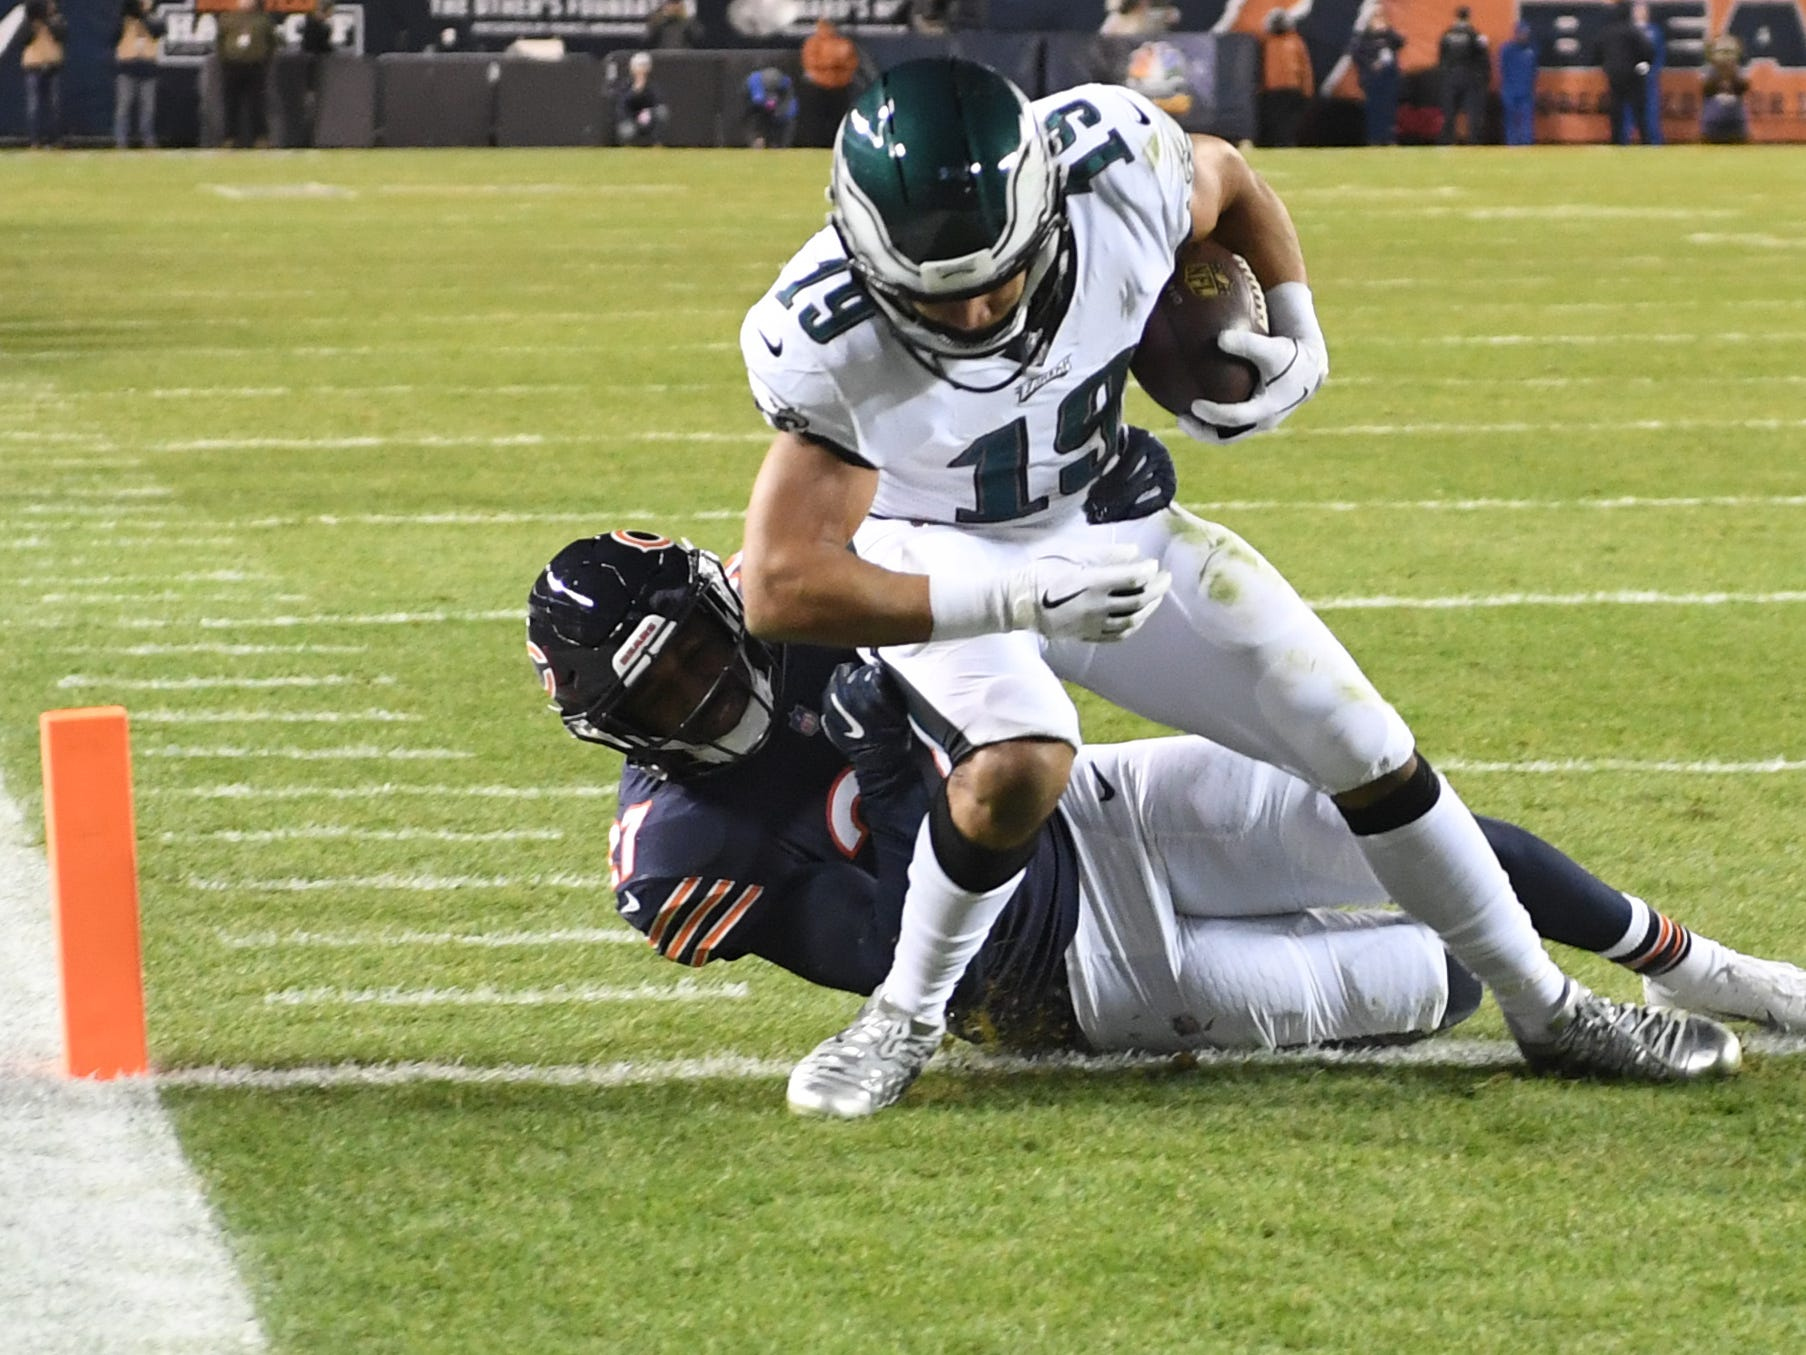 Philadelphia Eagles wide receiver Golden Tate scores the winning touchdown against the Chicago Bears  in the fourth quarter of the NFC wild-card game at Soldier Field.